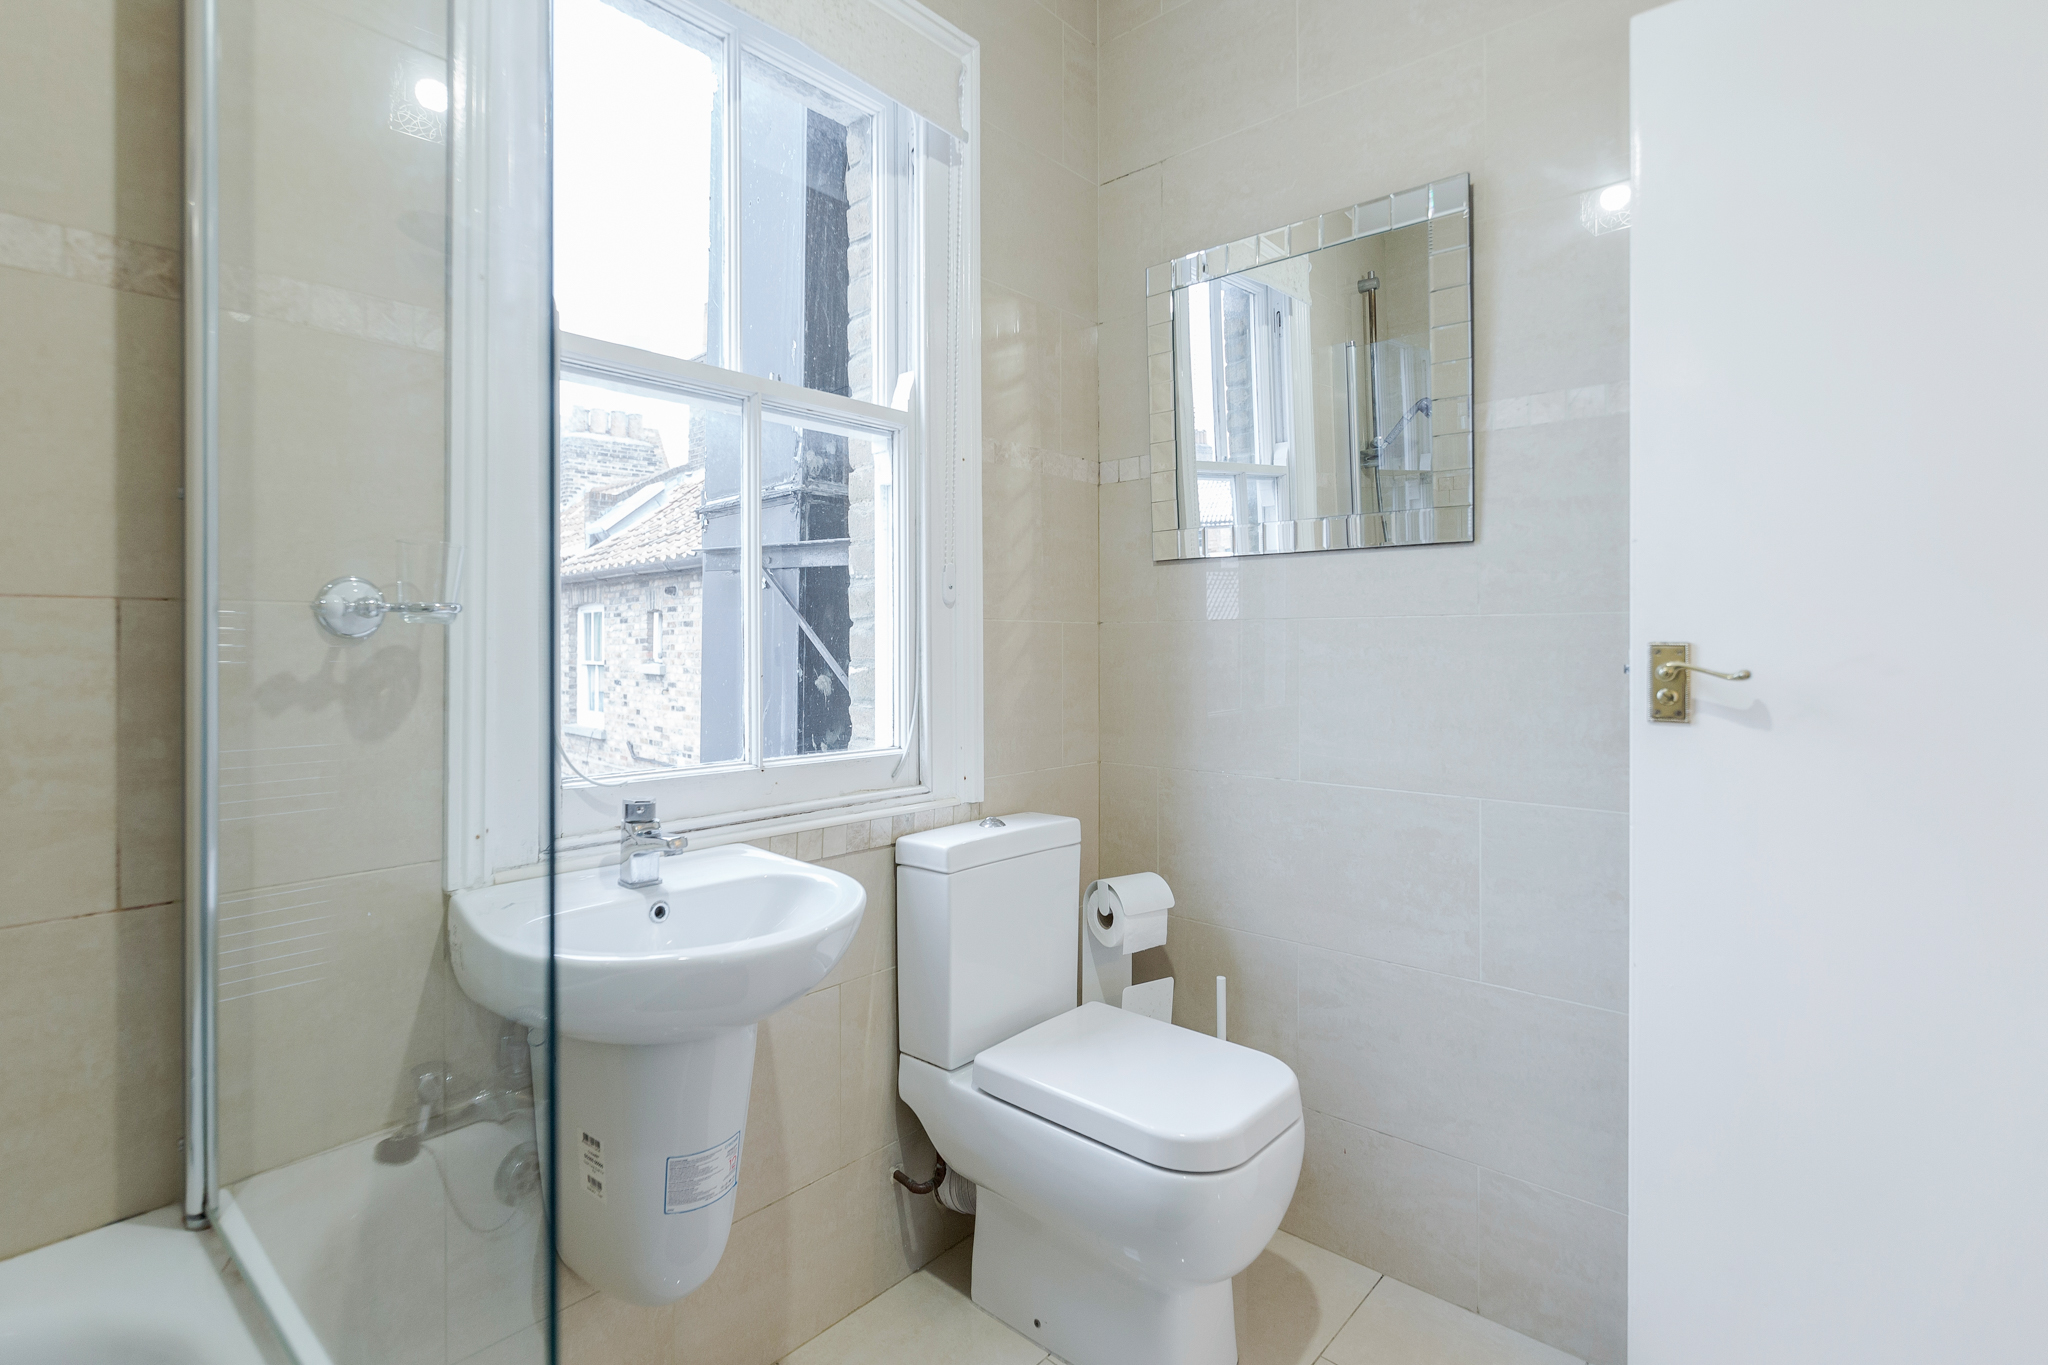 Apartment Contemporary East London Style Apartment in the heart of Brick Lane - one Minute from The Truman Brewery  photo 20247432